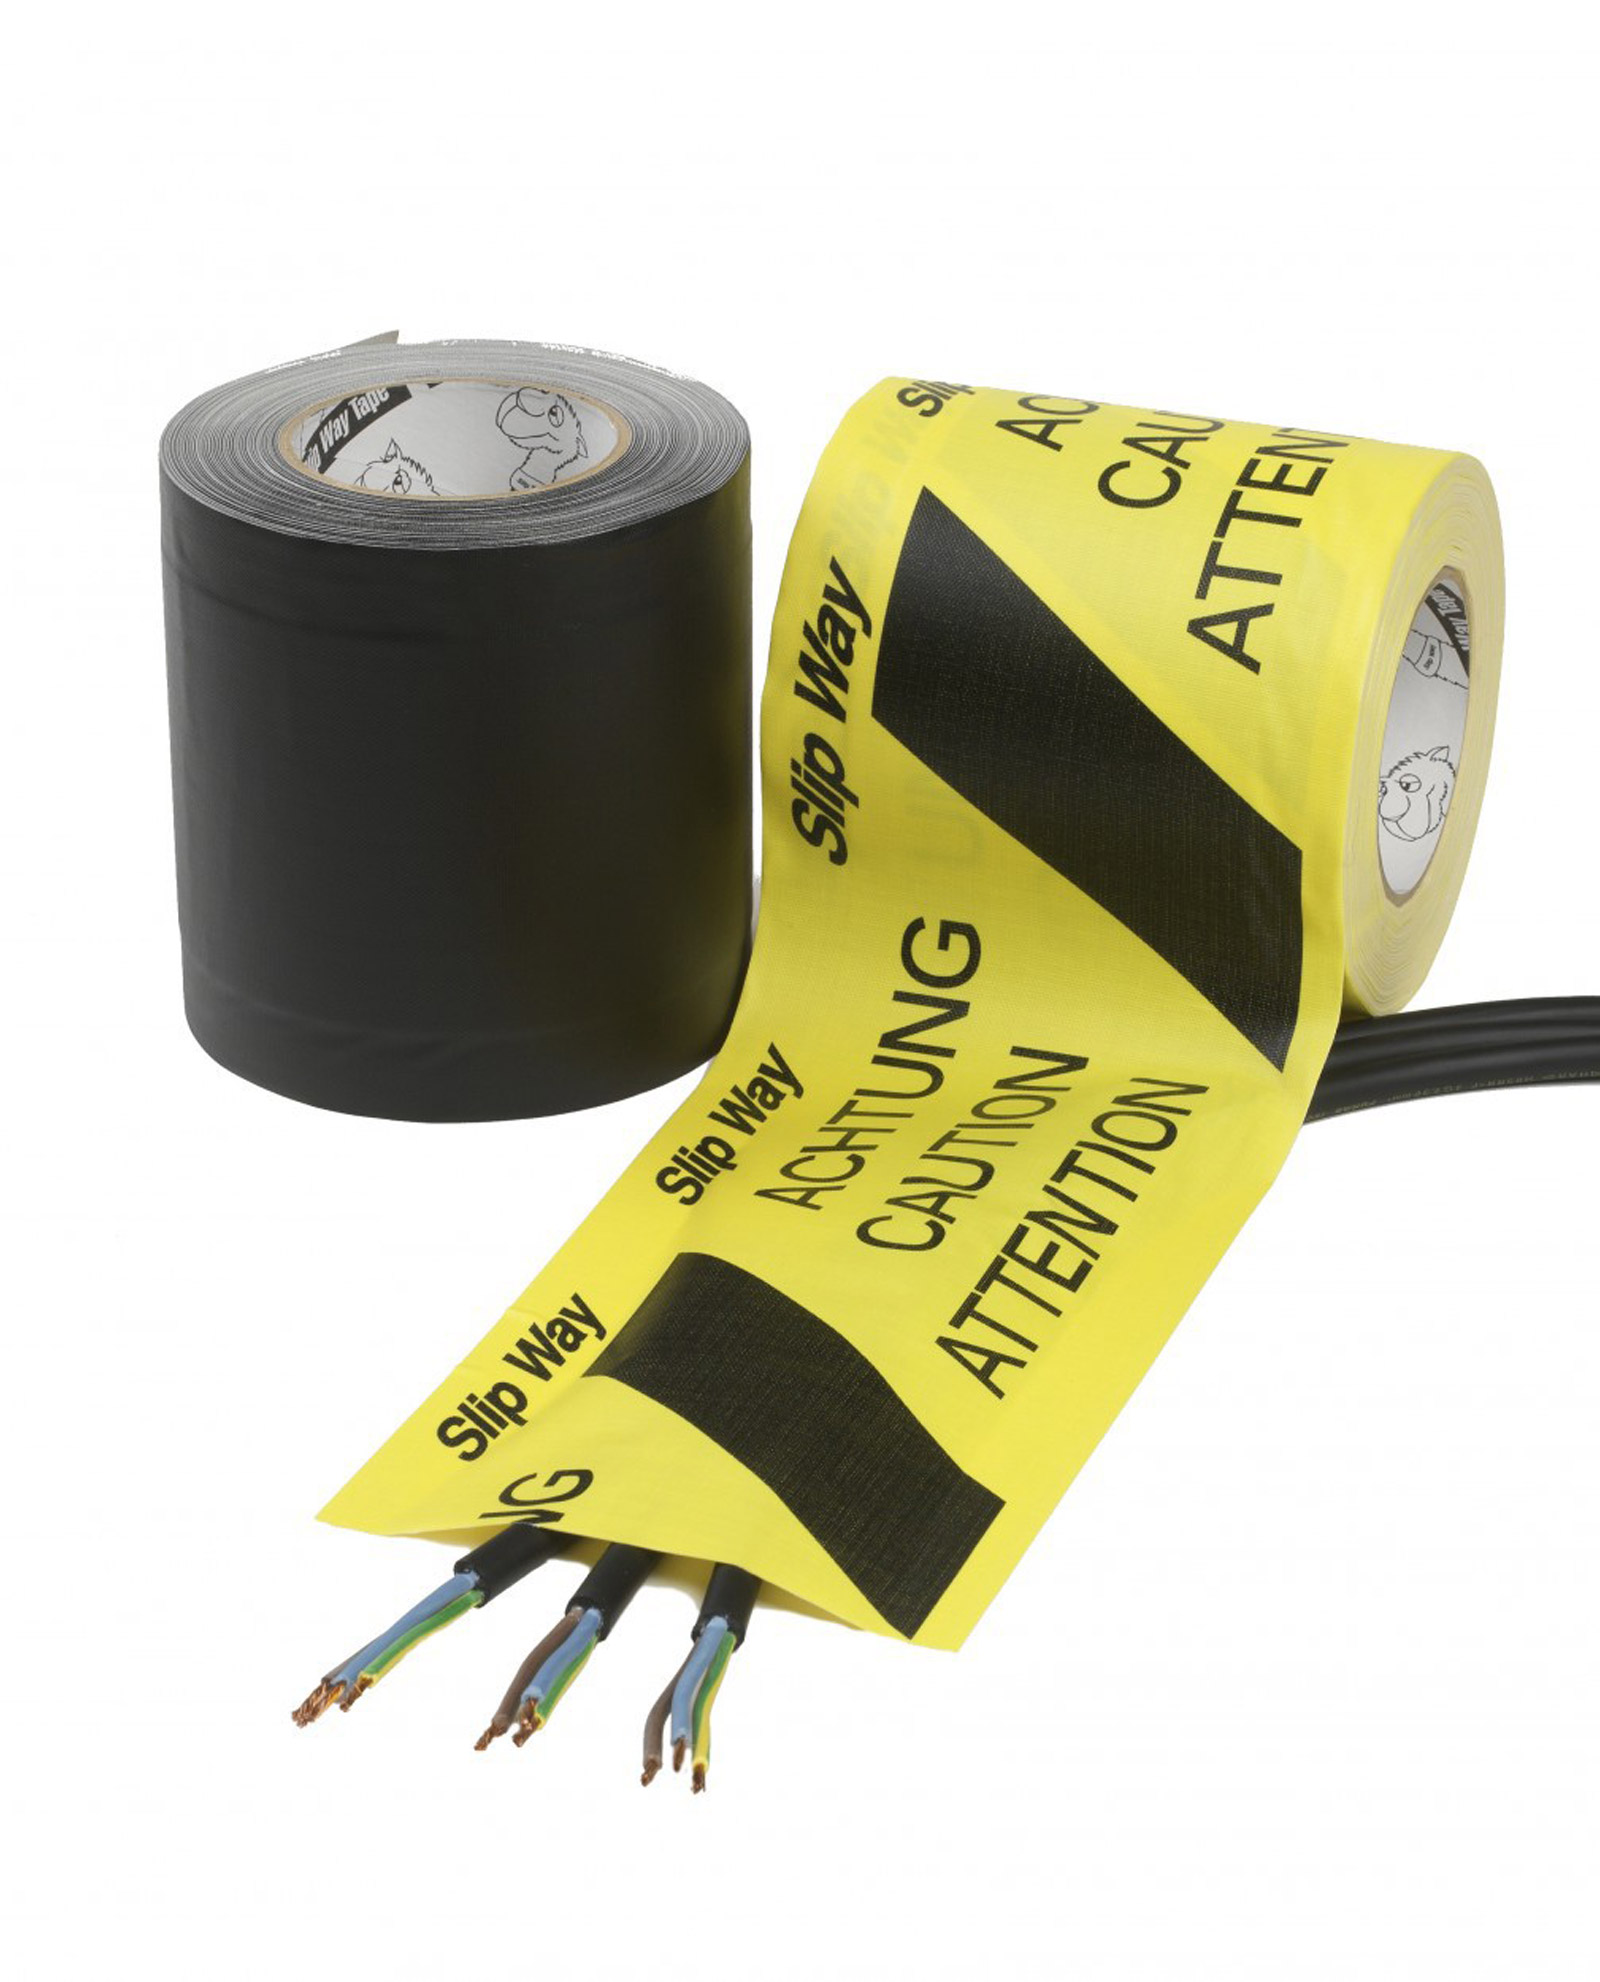 Cable Management Tapes Slipway Black Yellow